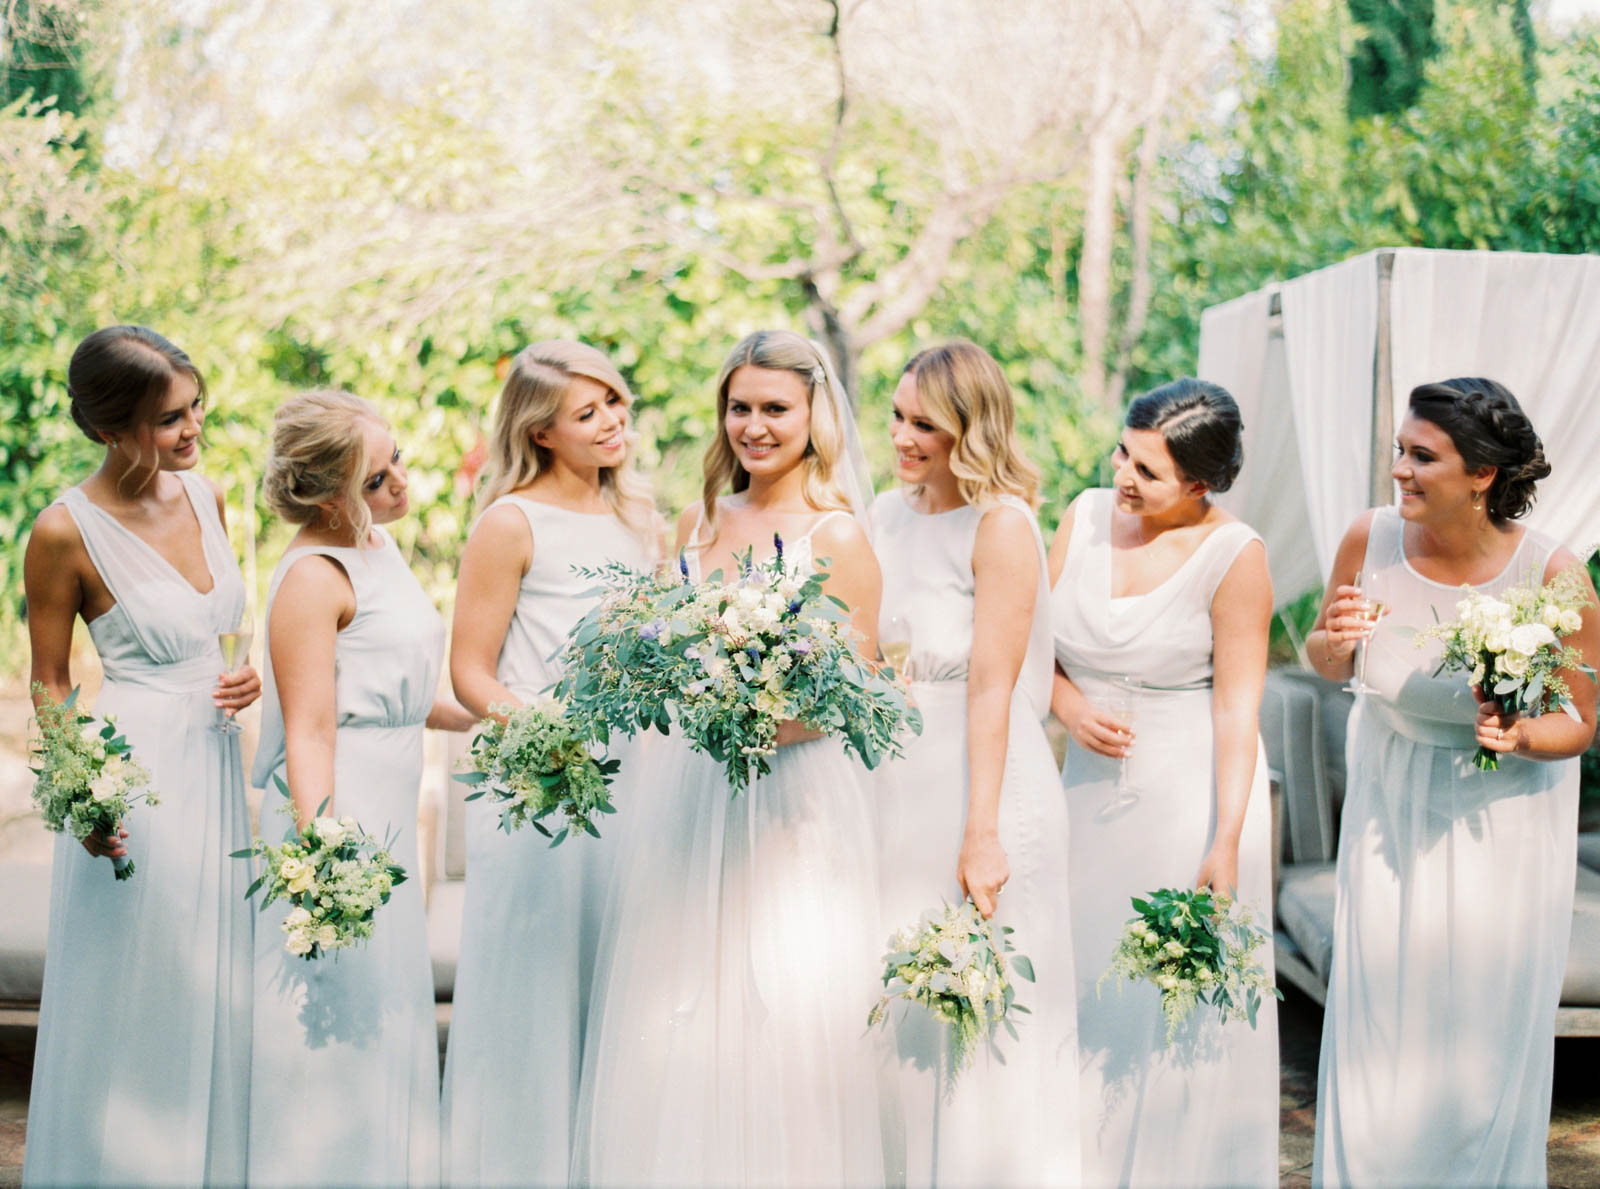 Awe-destination wedding in French Riviera at Chateau Diter